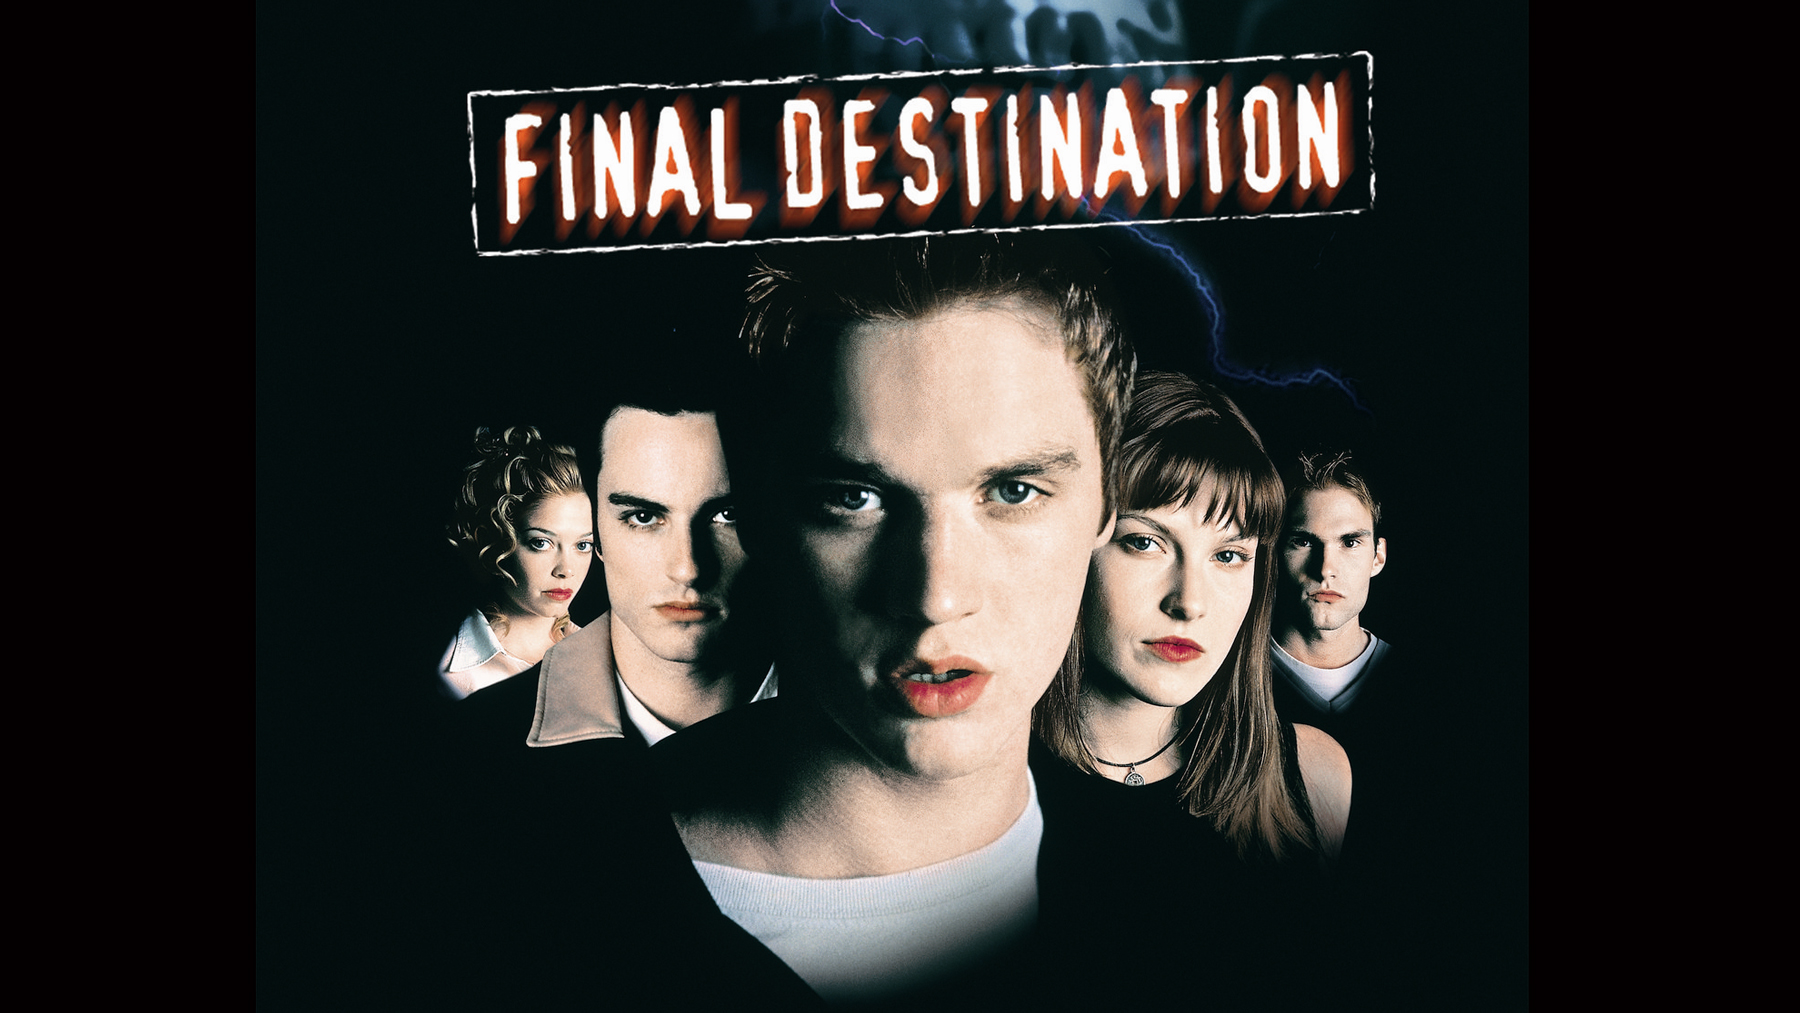 Final Destination ISTYA review